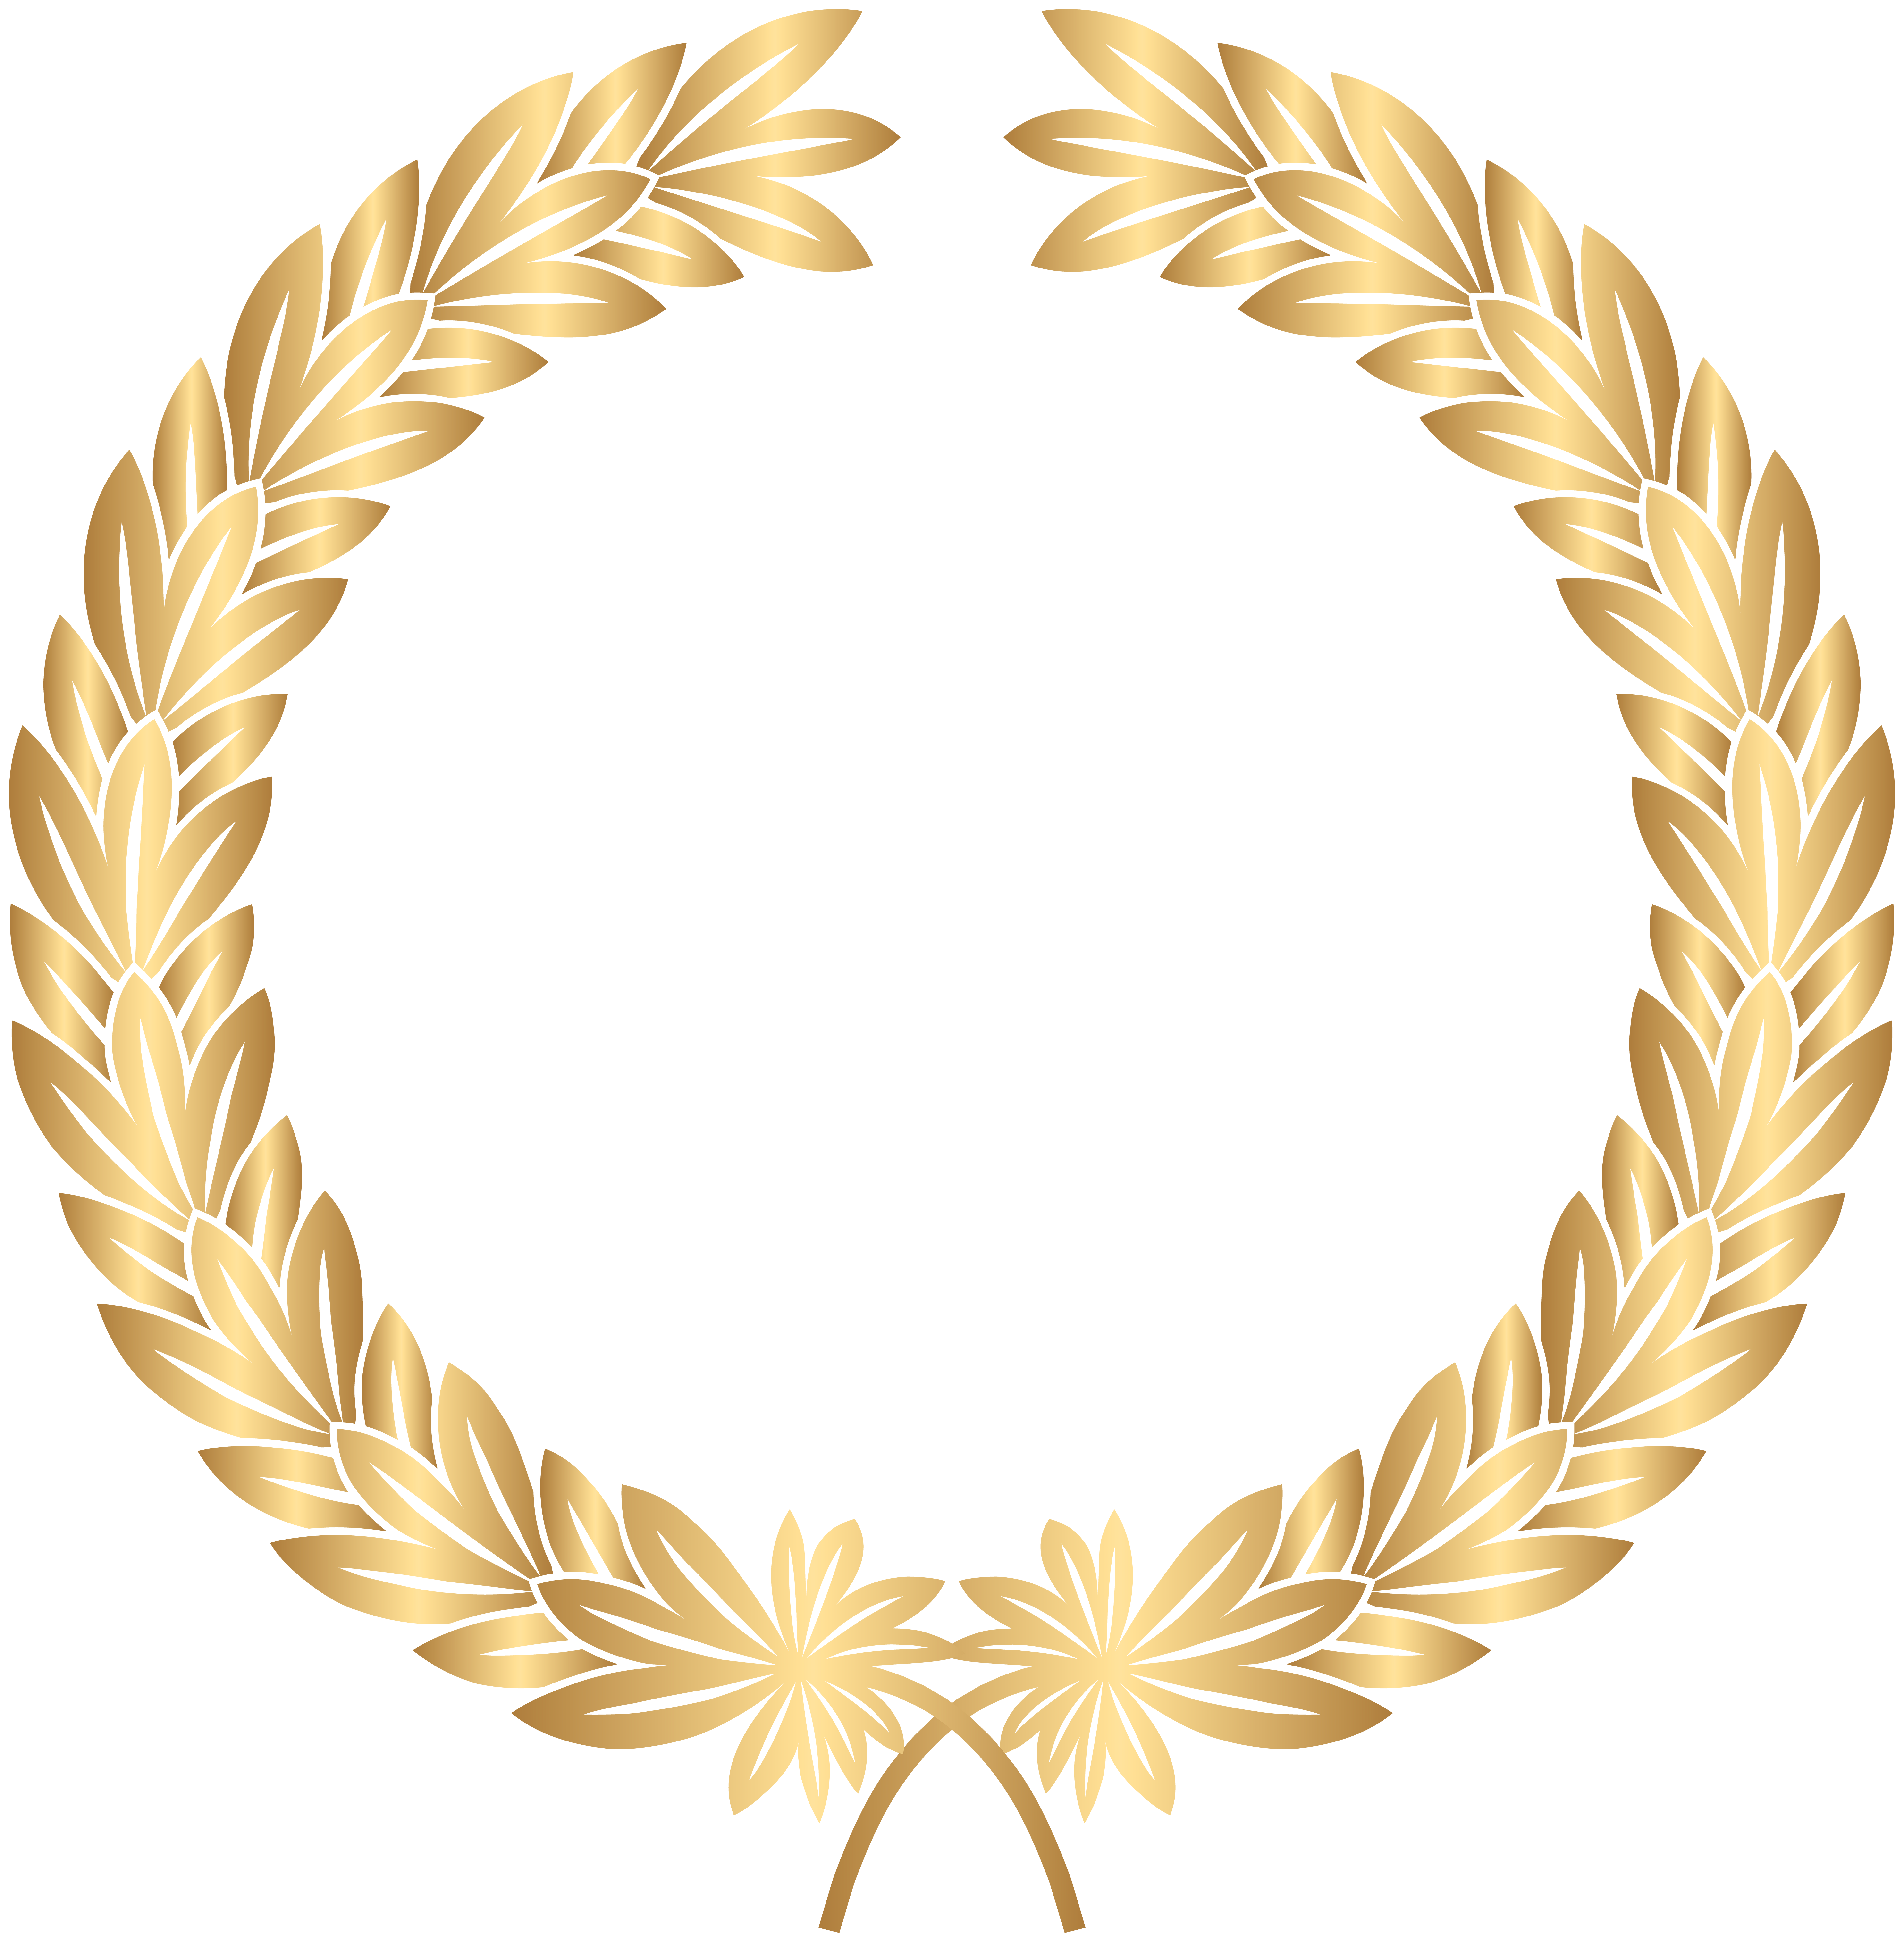 Laurel Wreath Transparent Png Clip Art Gallery Yopriceville High Quality Images And Transparent Pn Laurel Wreath Free Clip Art Violet Evergarden Wallpaper